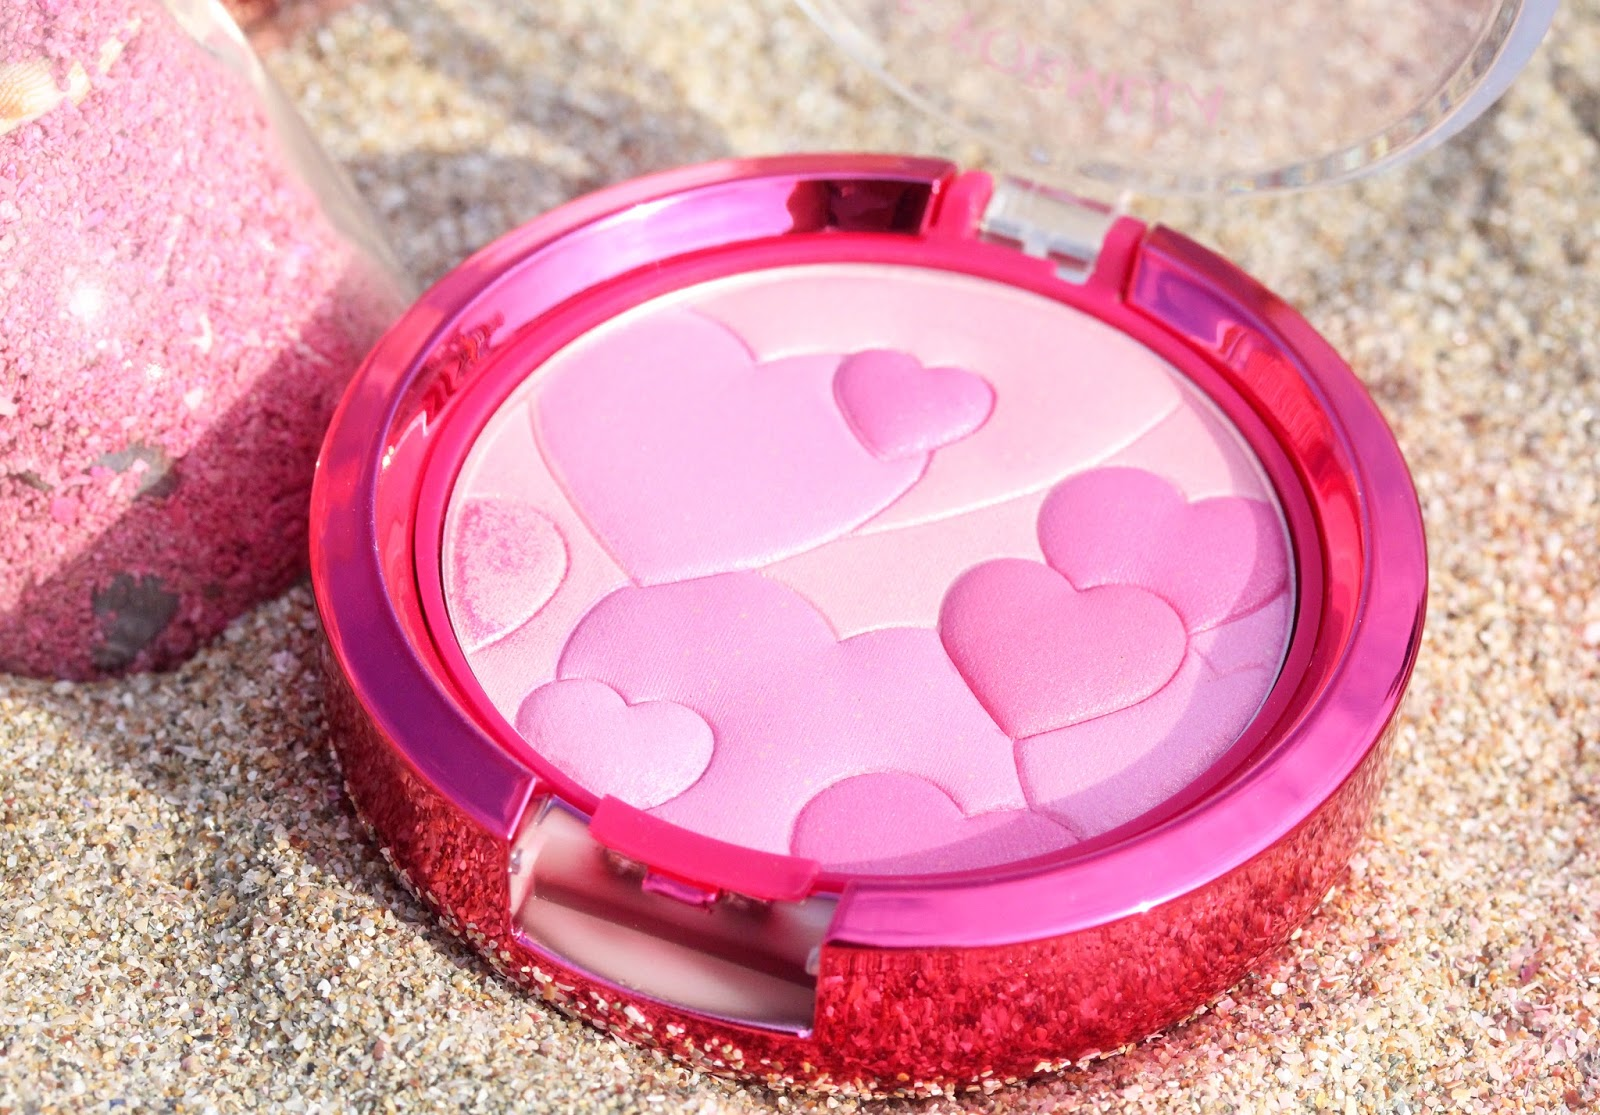 physicians formula happy booster blush in Pink